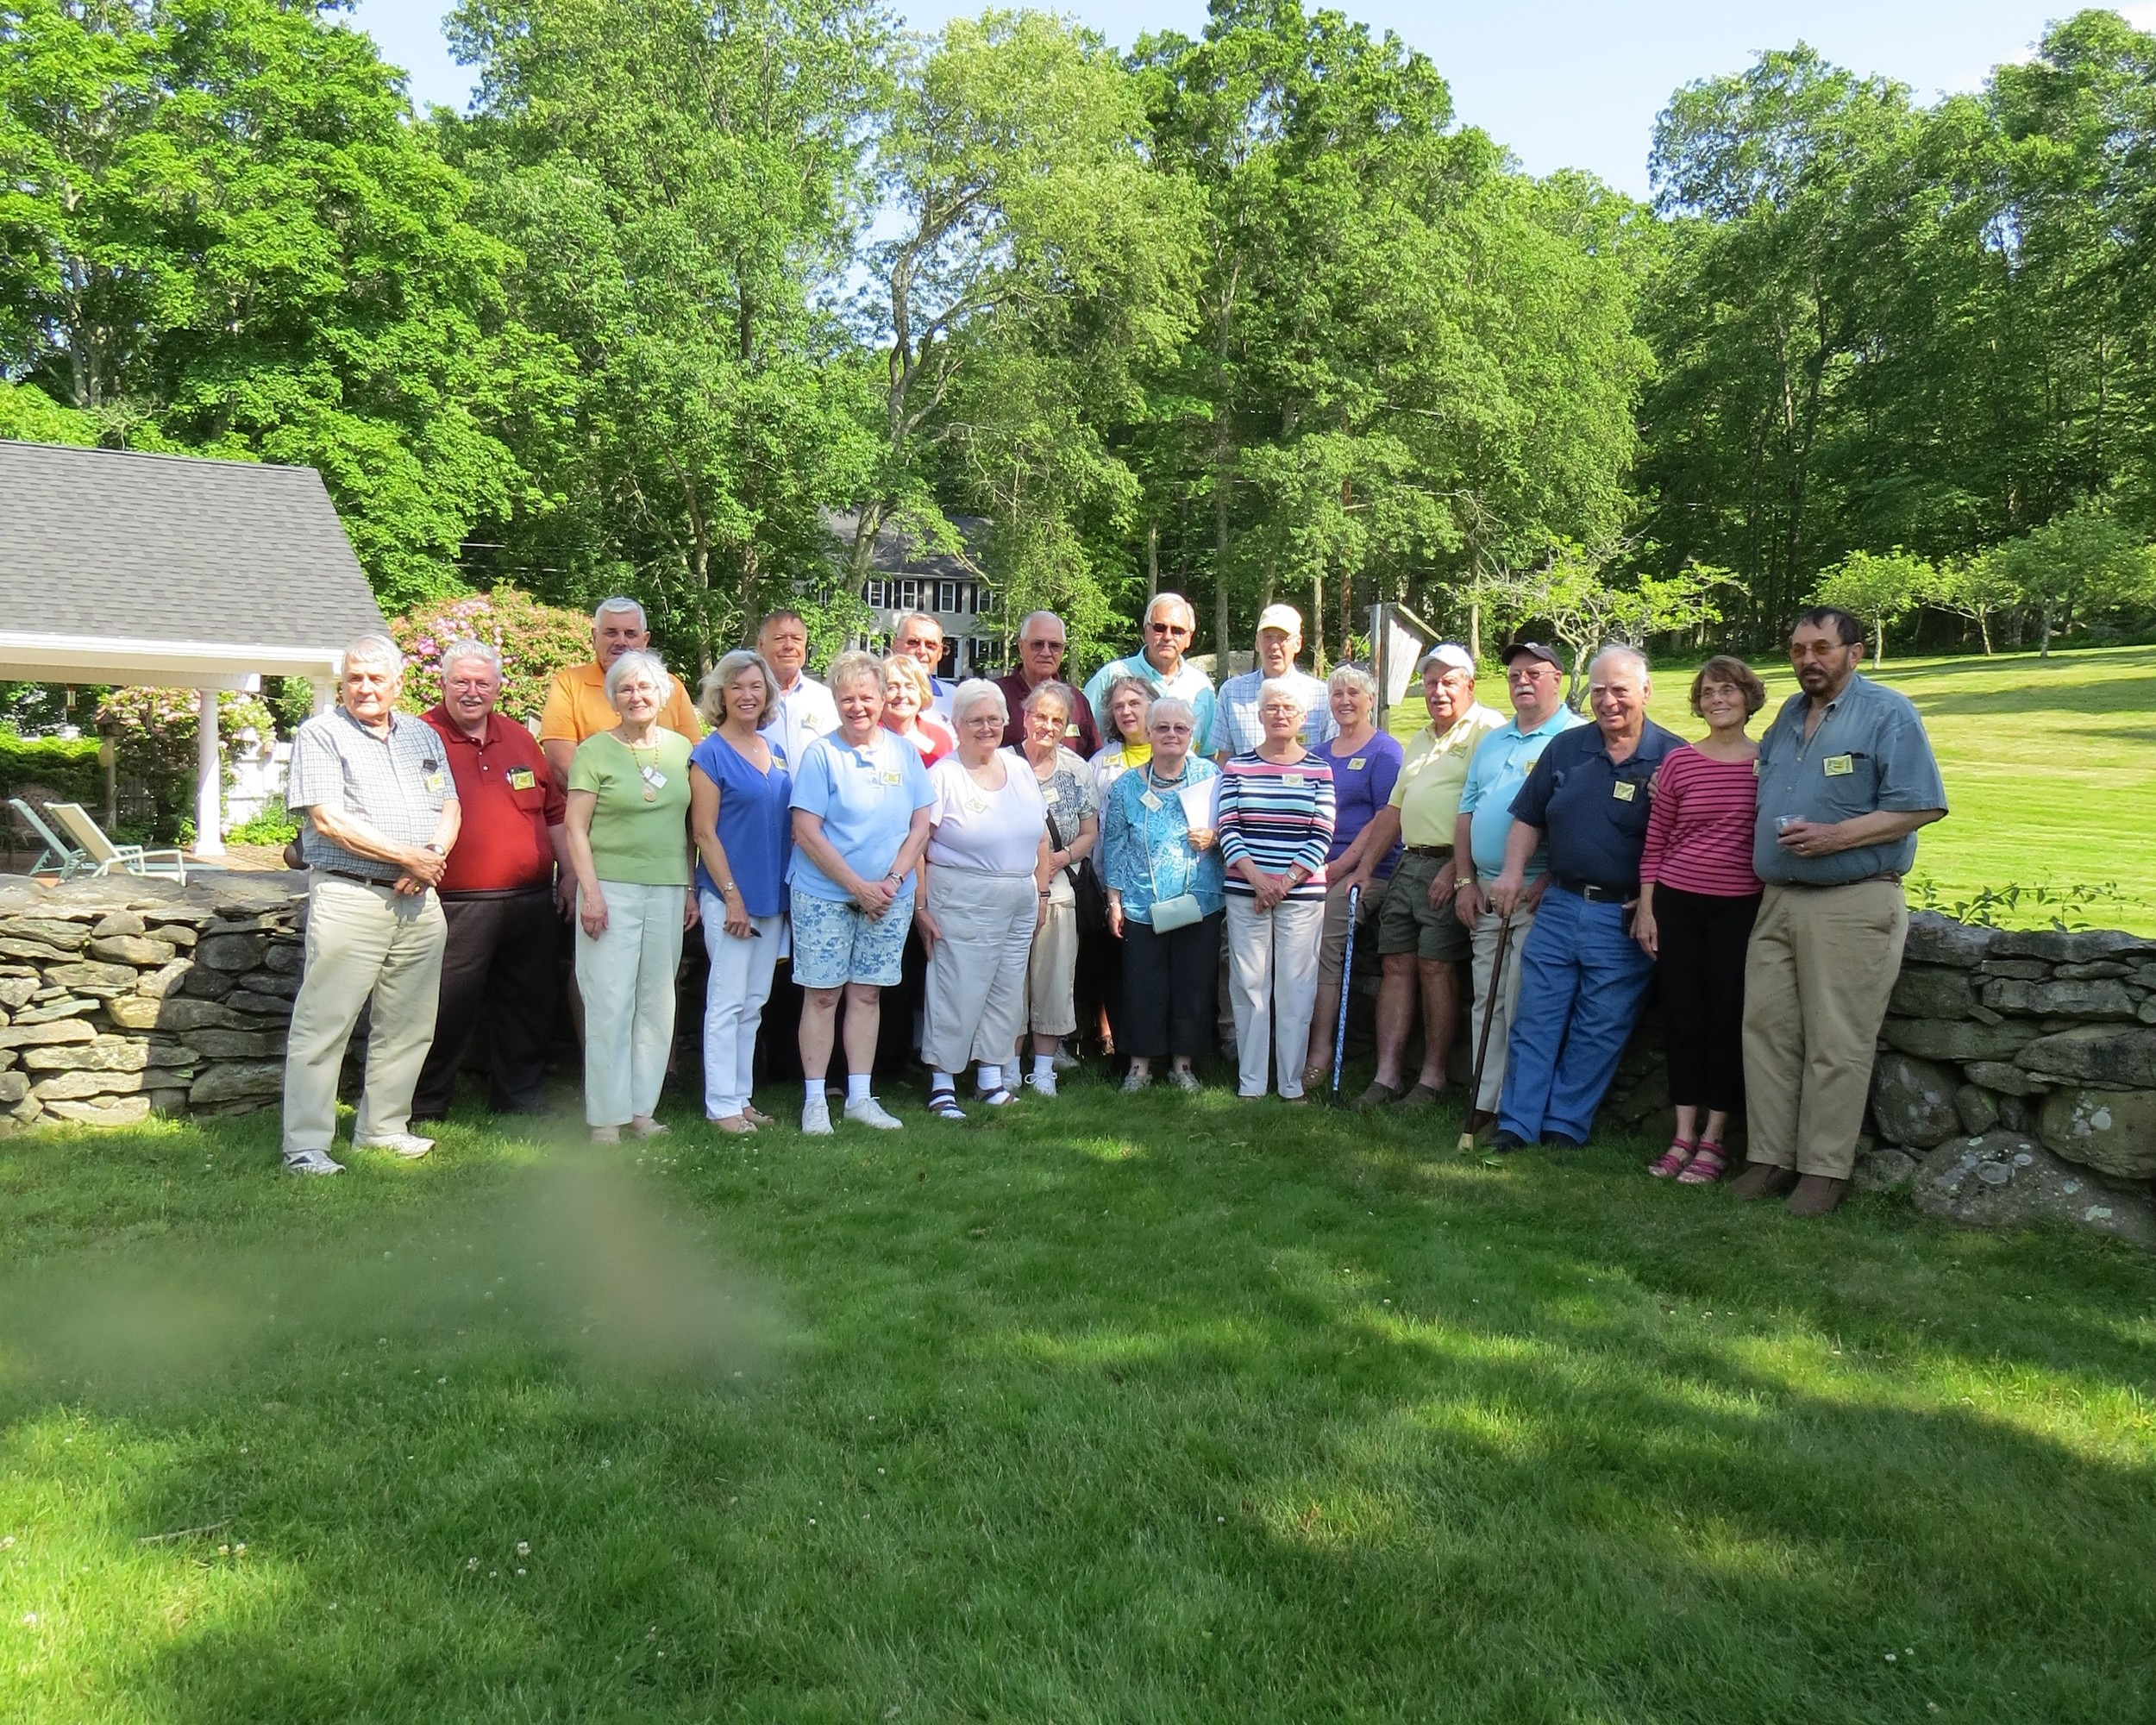 Dighton-Rehoboth High School First Falcons, class 1961, during their 56th reunion at the home of Class Treasurer Carl Stonstrom